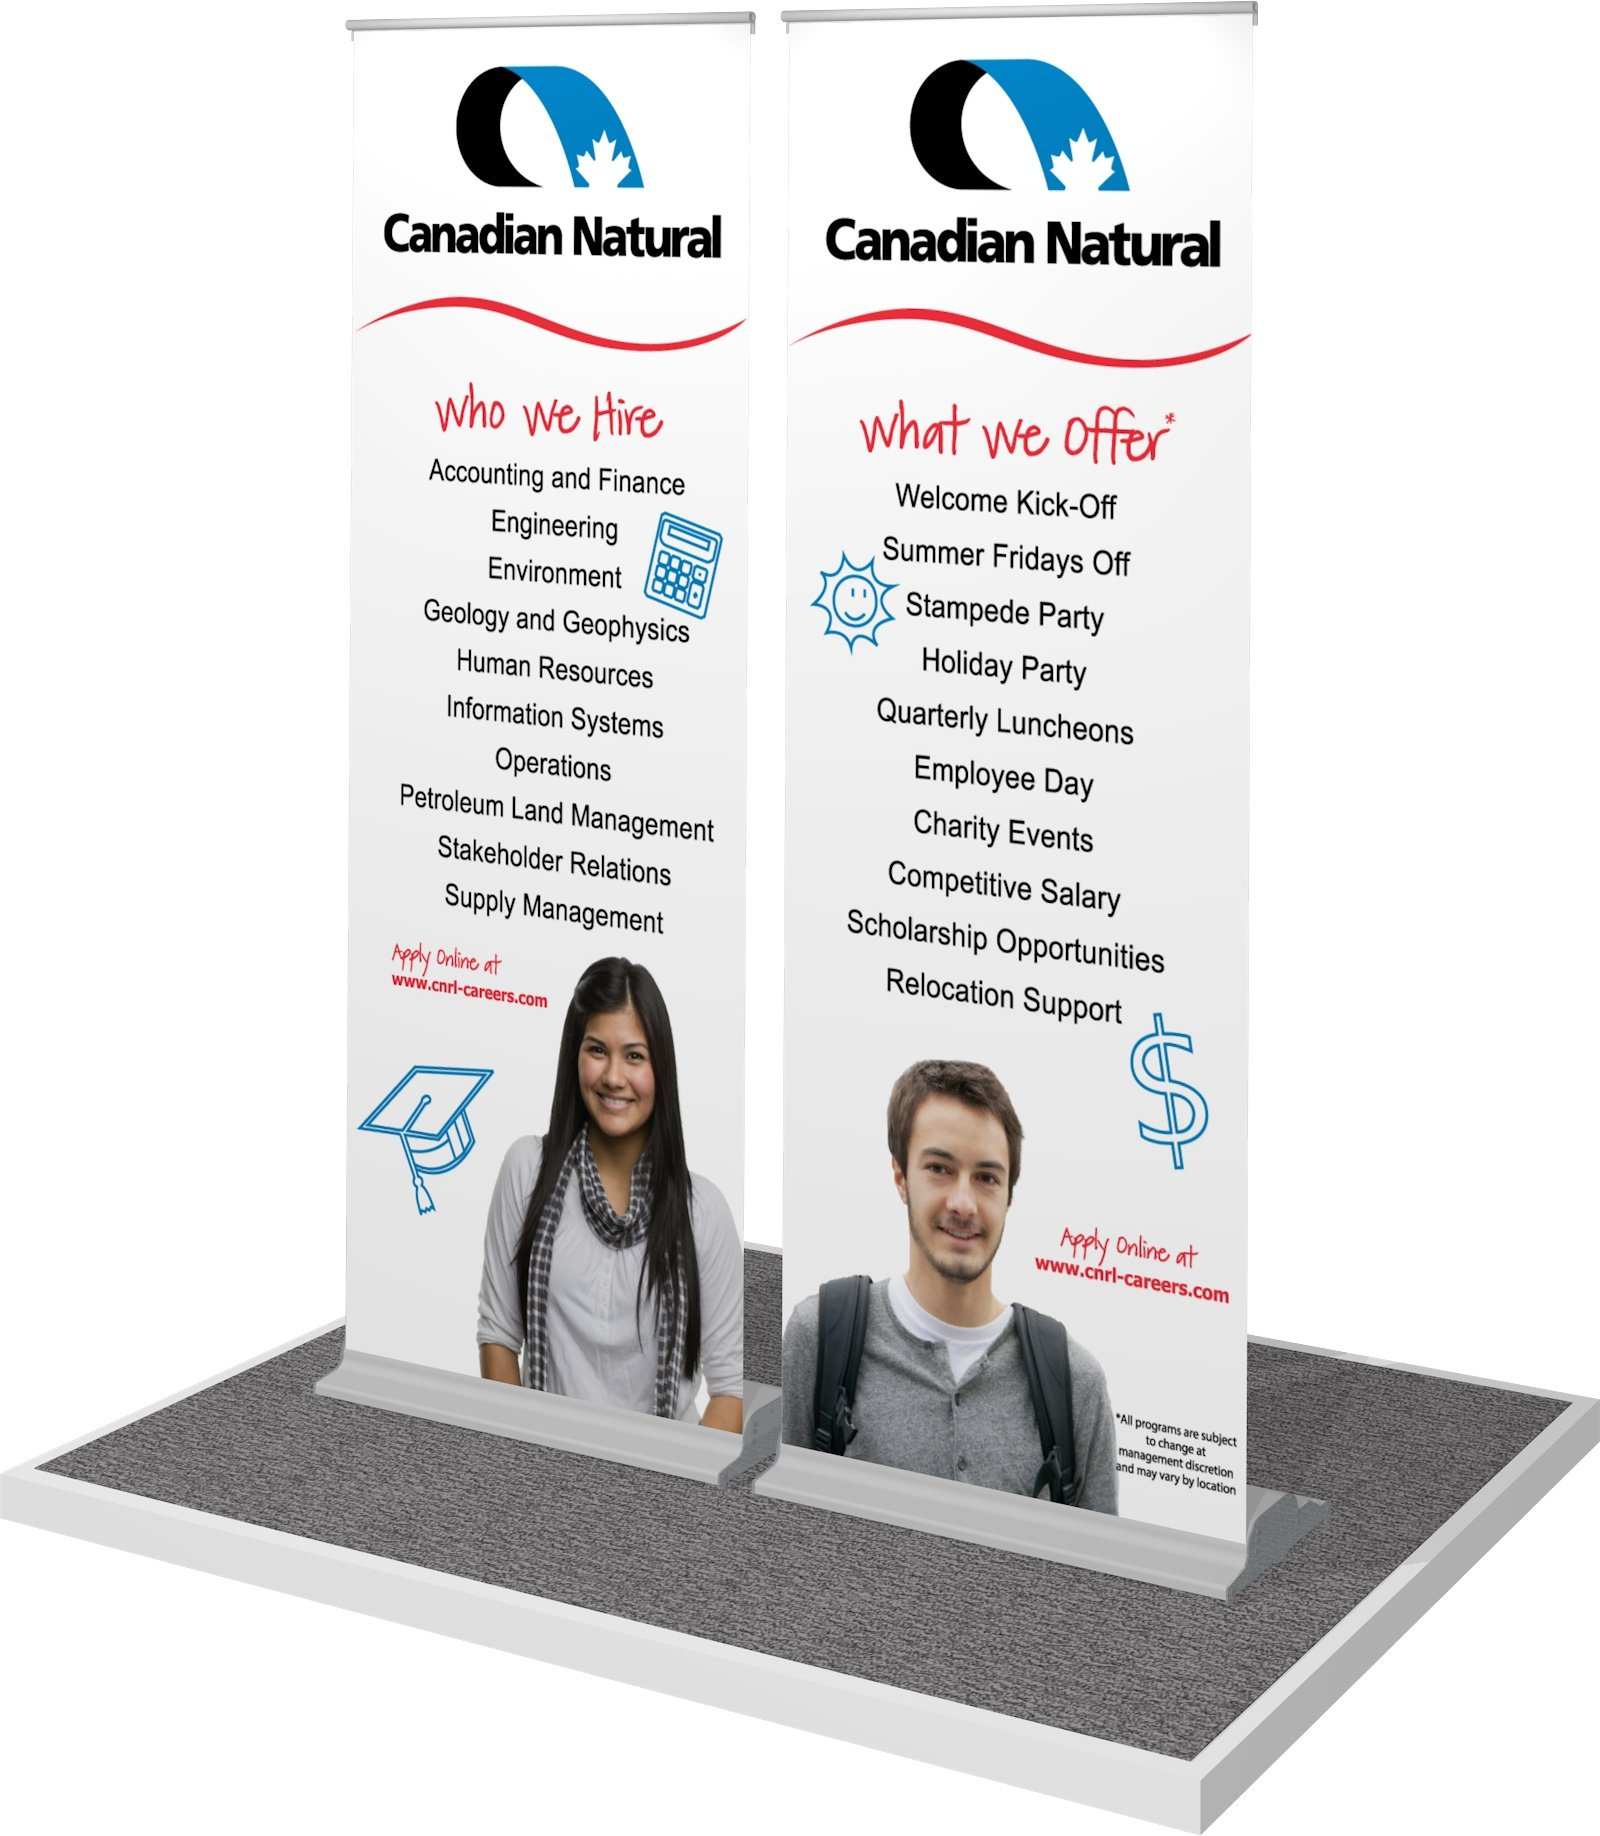 portable banner stand mini me display for CNRL